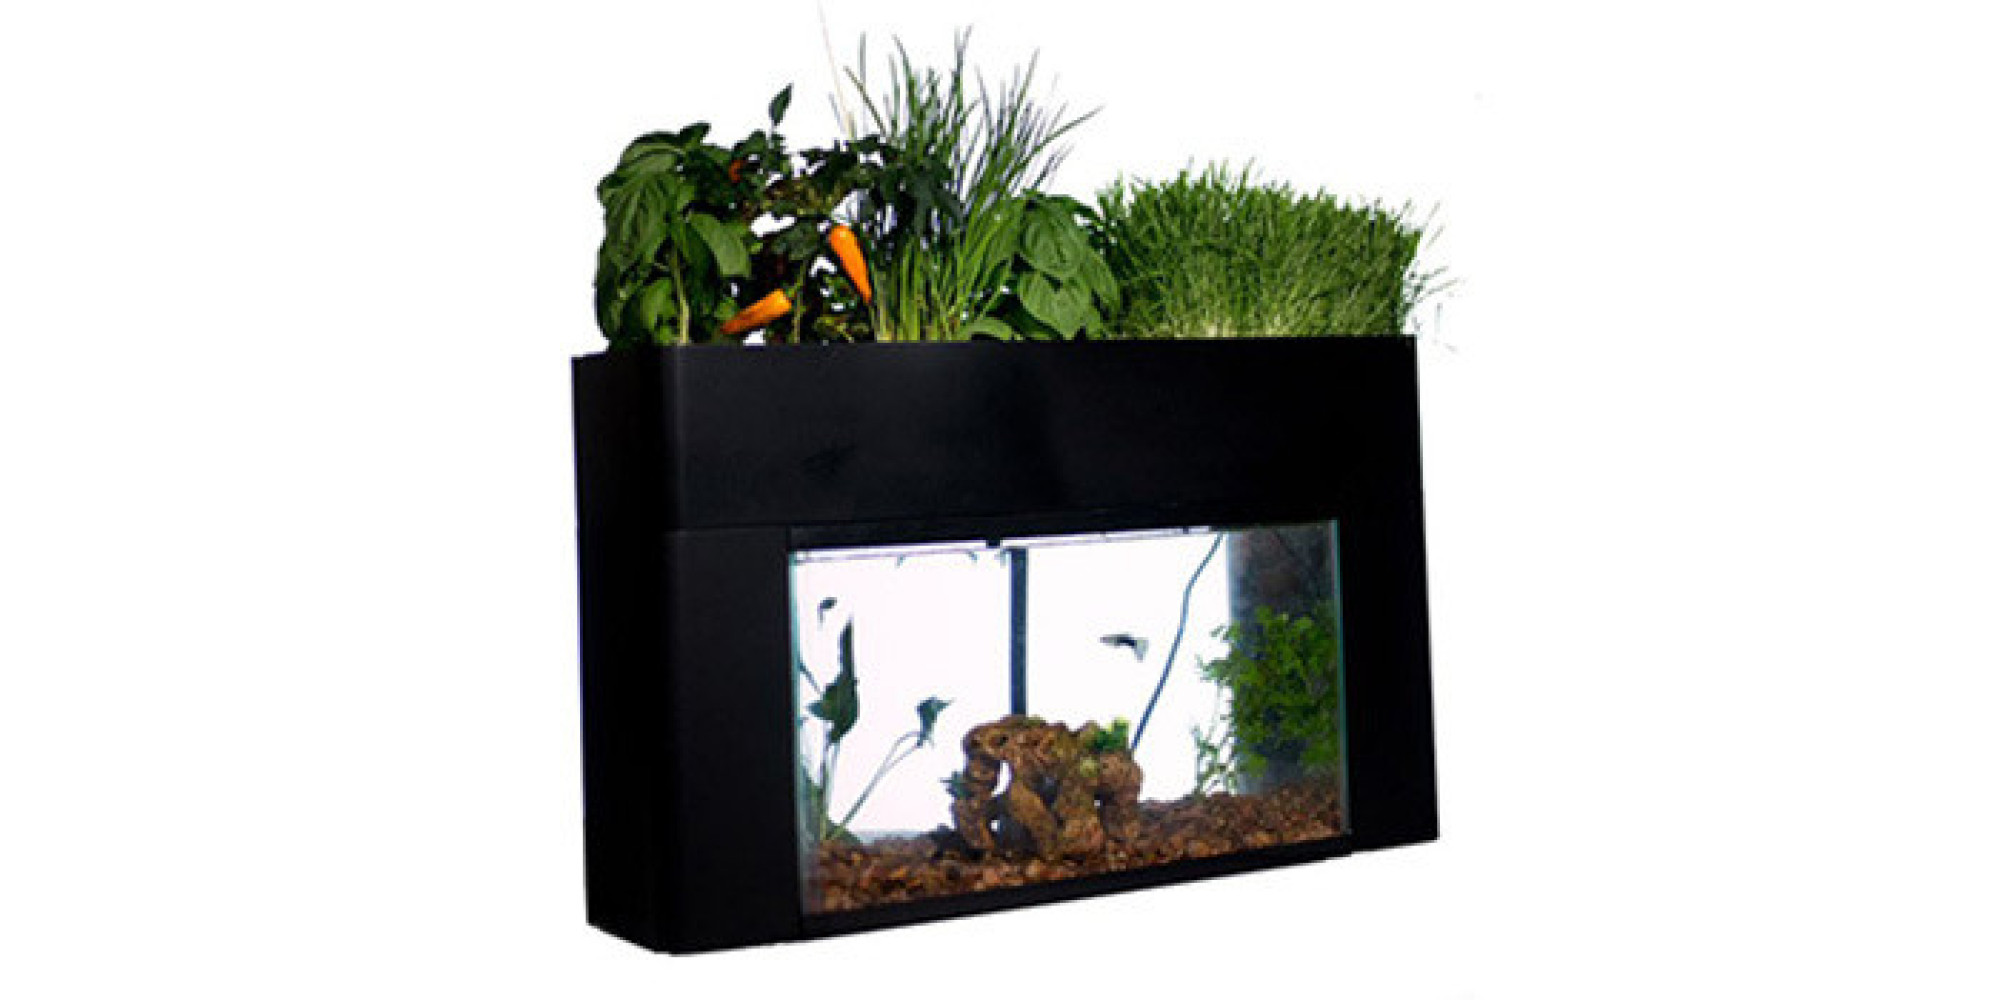 How to grow a vegetable garden that 39 s fertilized by your for Fish tank garden